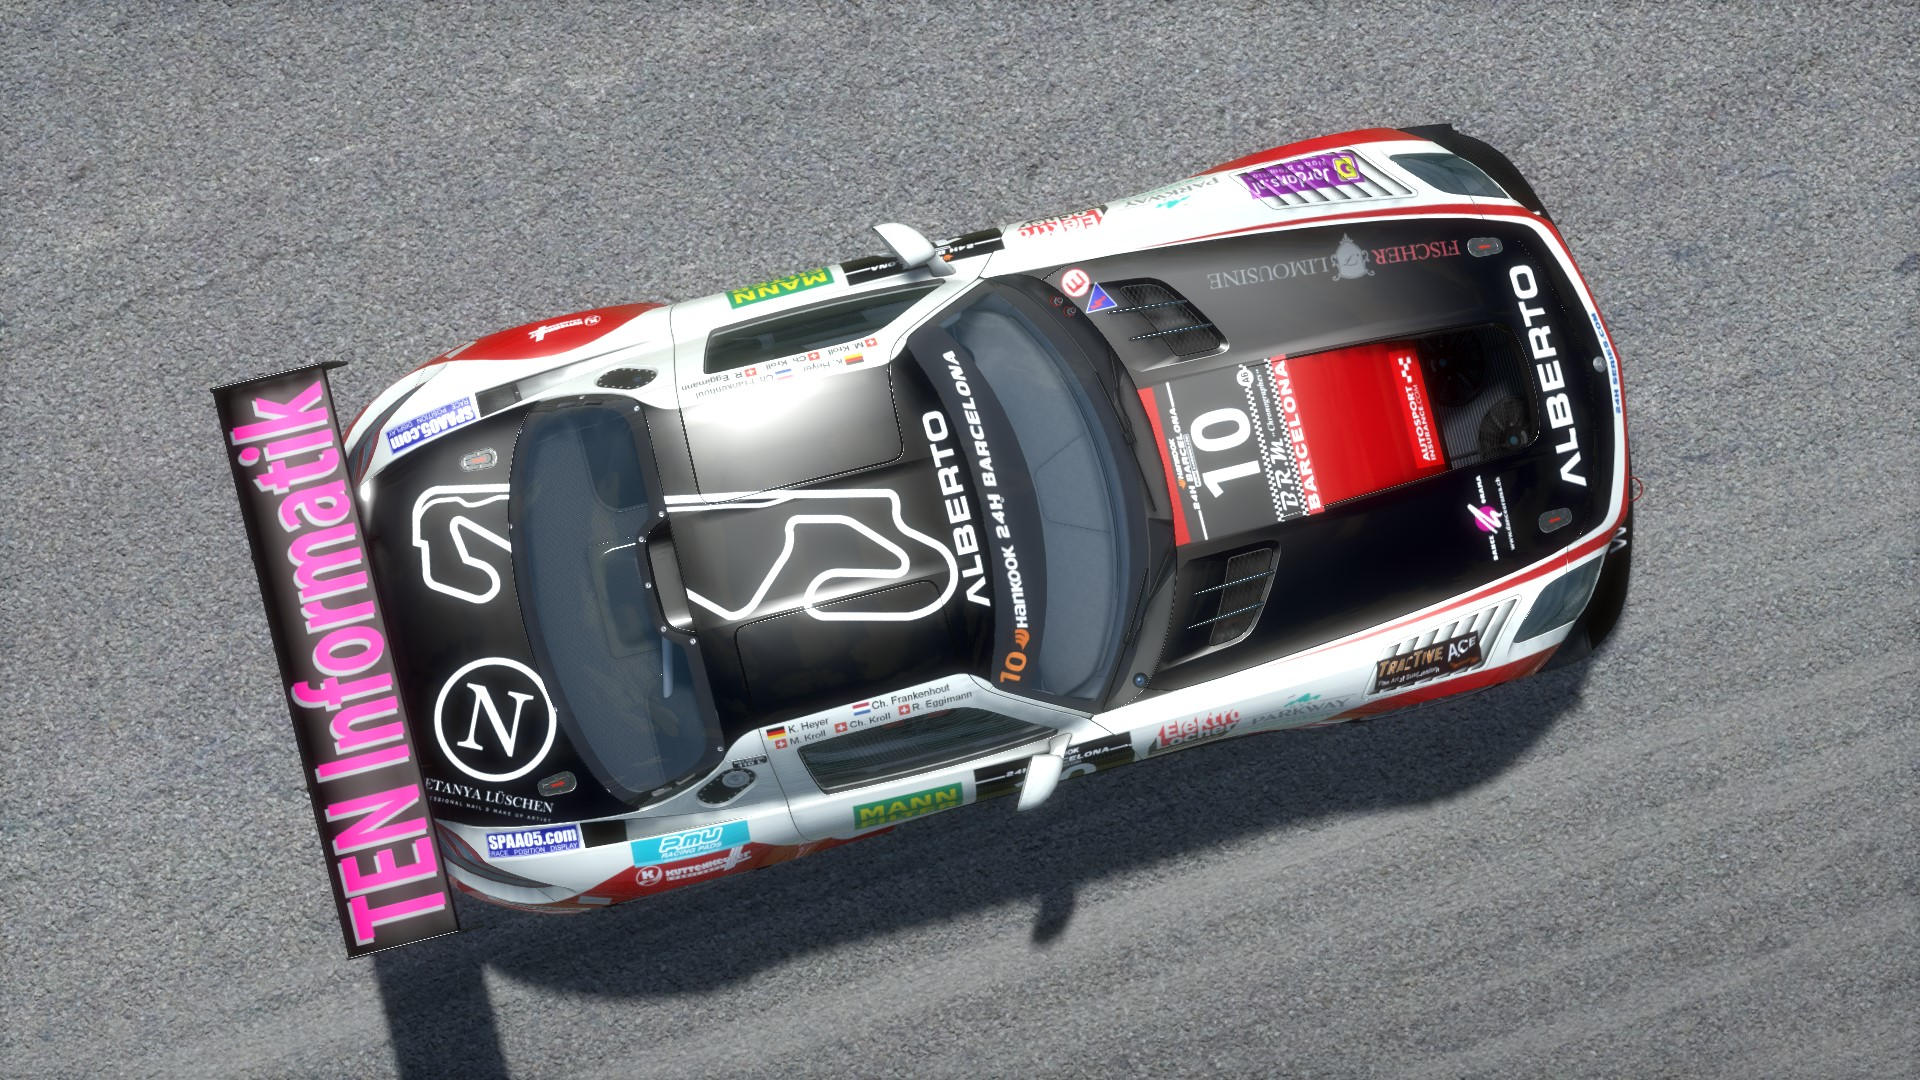 Screenshot_mercedes_sls_gt3_imola_7-9-115-15-30-38.jpg